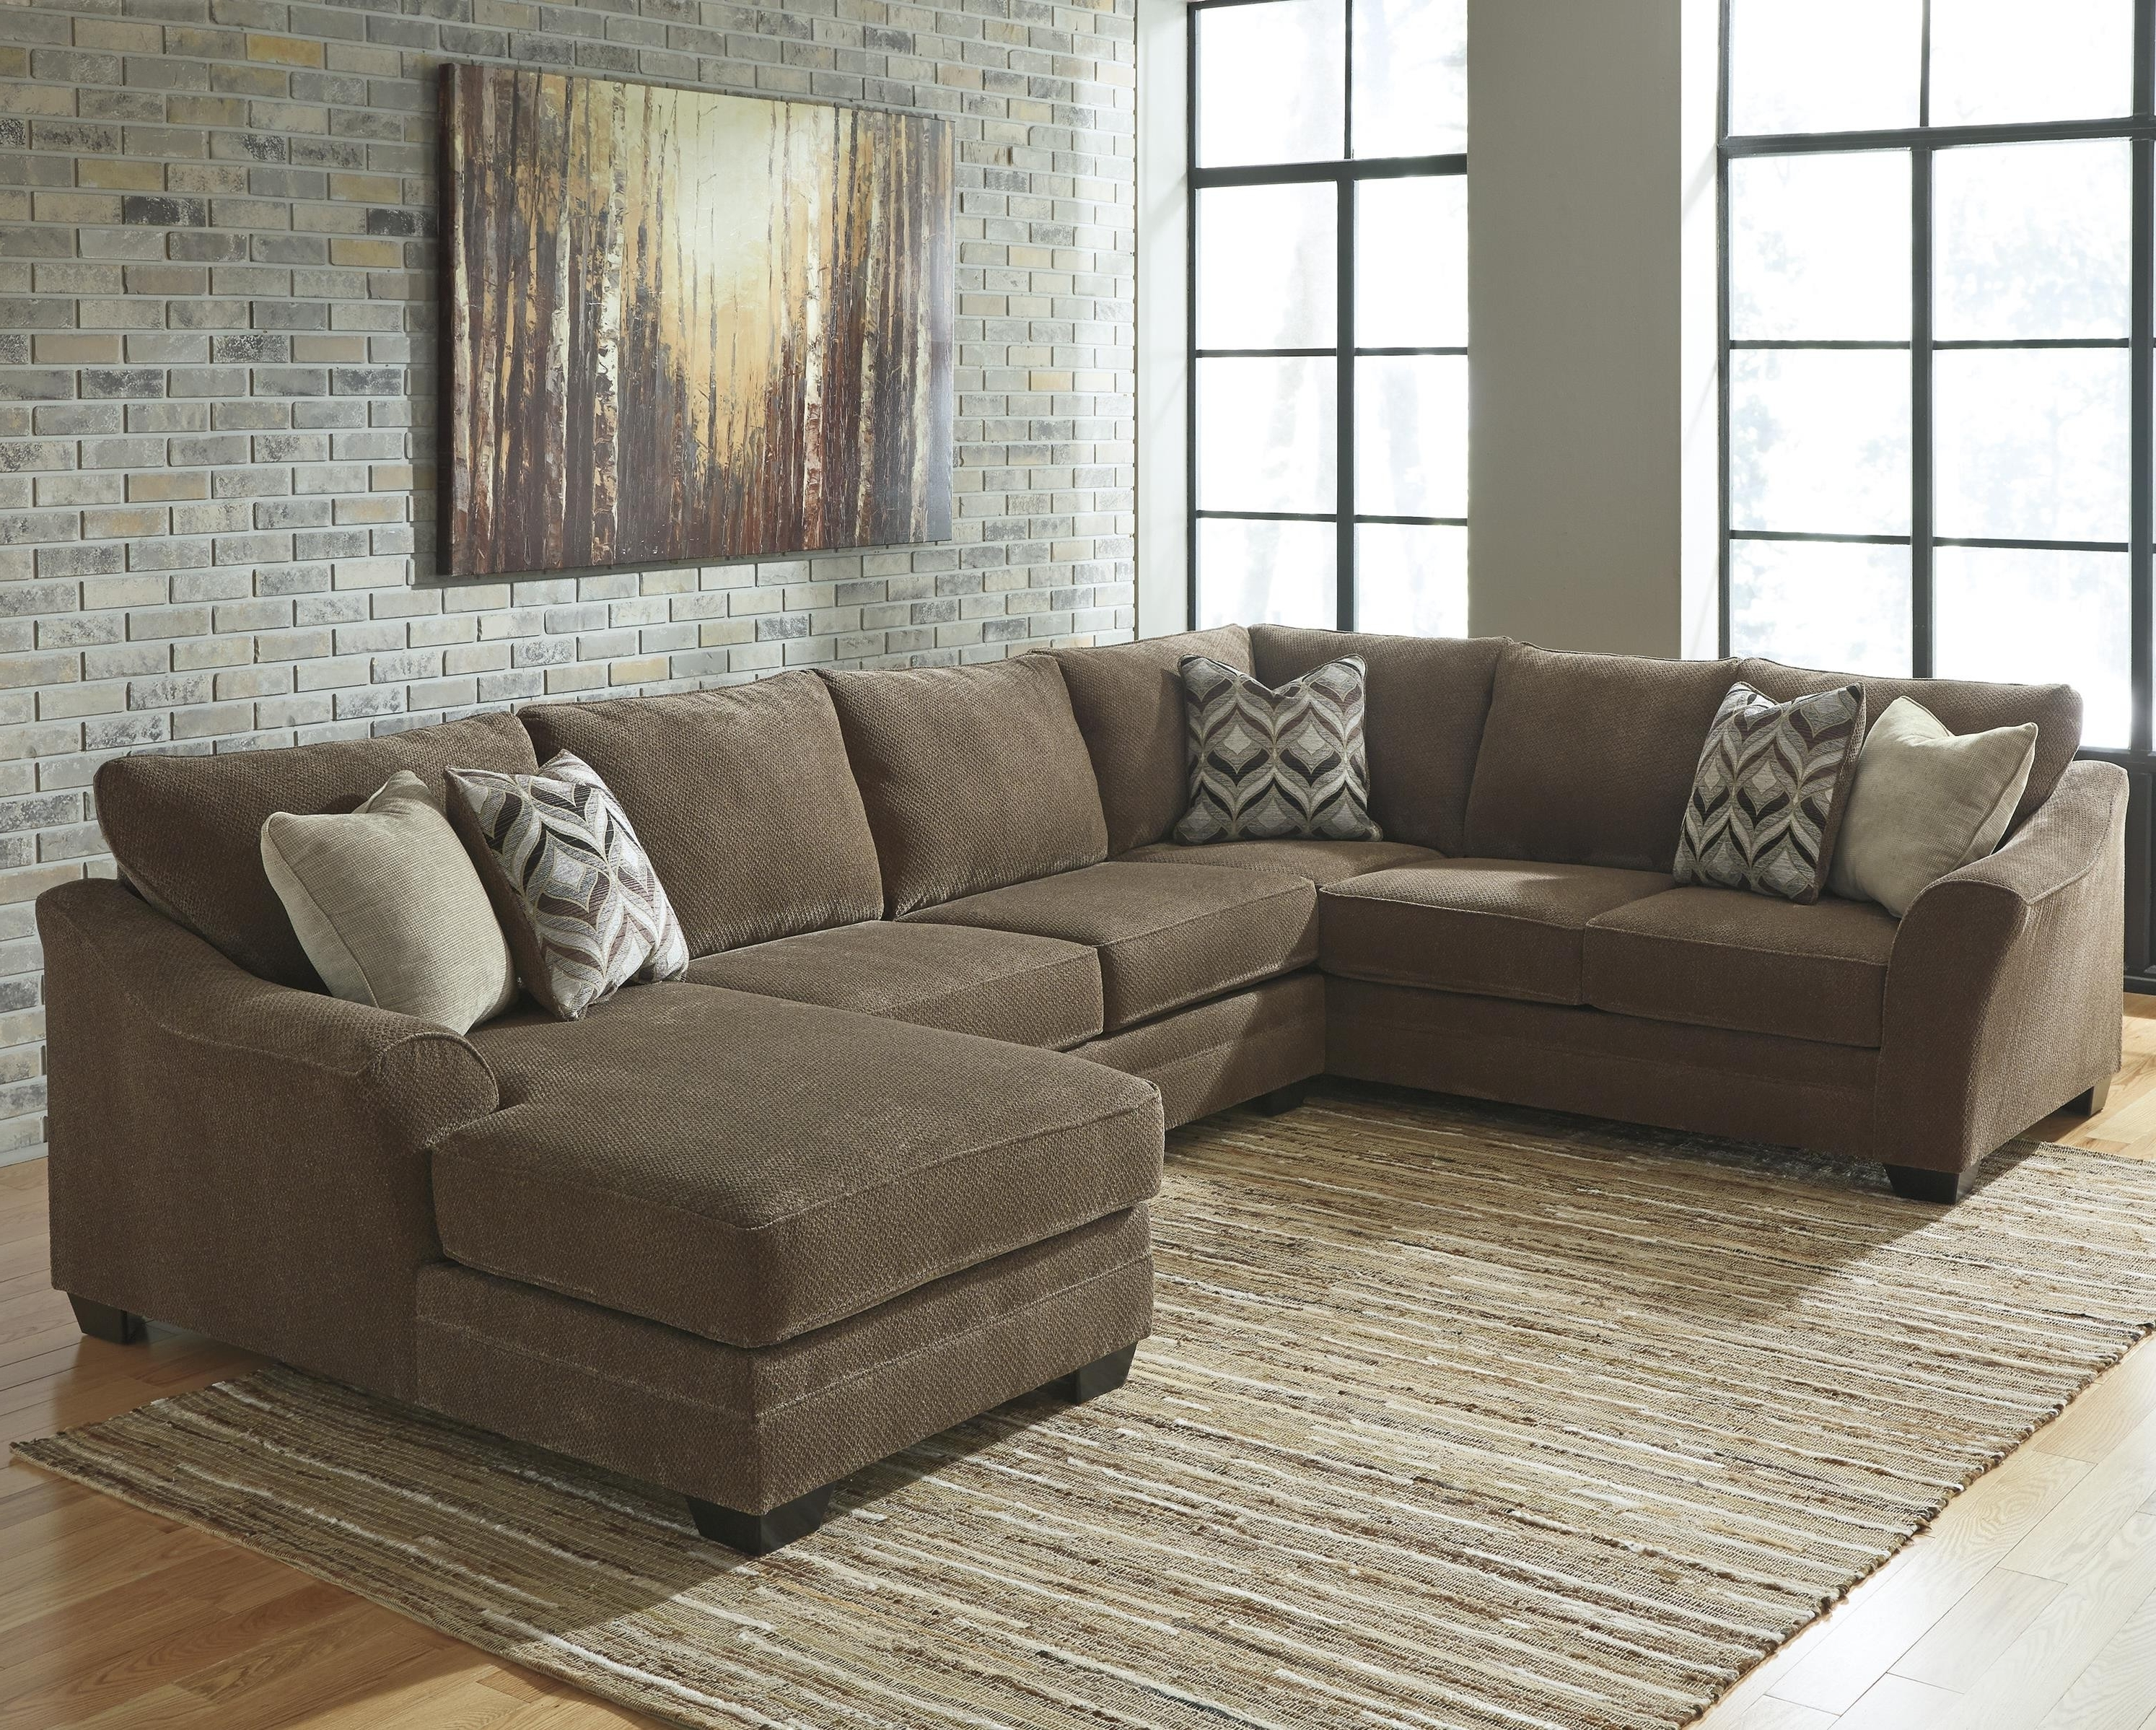 Widely Used Sofa Cheap Sectional Sofas Fabric Sectional Vaughn Apartment Inspirational  Vaughn Sectional Sofa 5Pc Dimensions Of Vaughn Sectional Sofa  5Pc Dimensions In Vaughan Sectional Sofas (View 6 of 15)